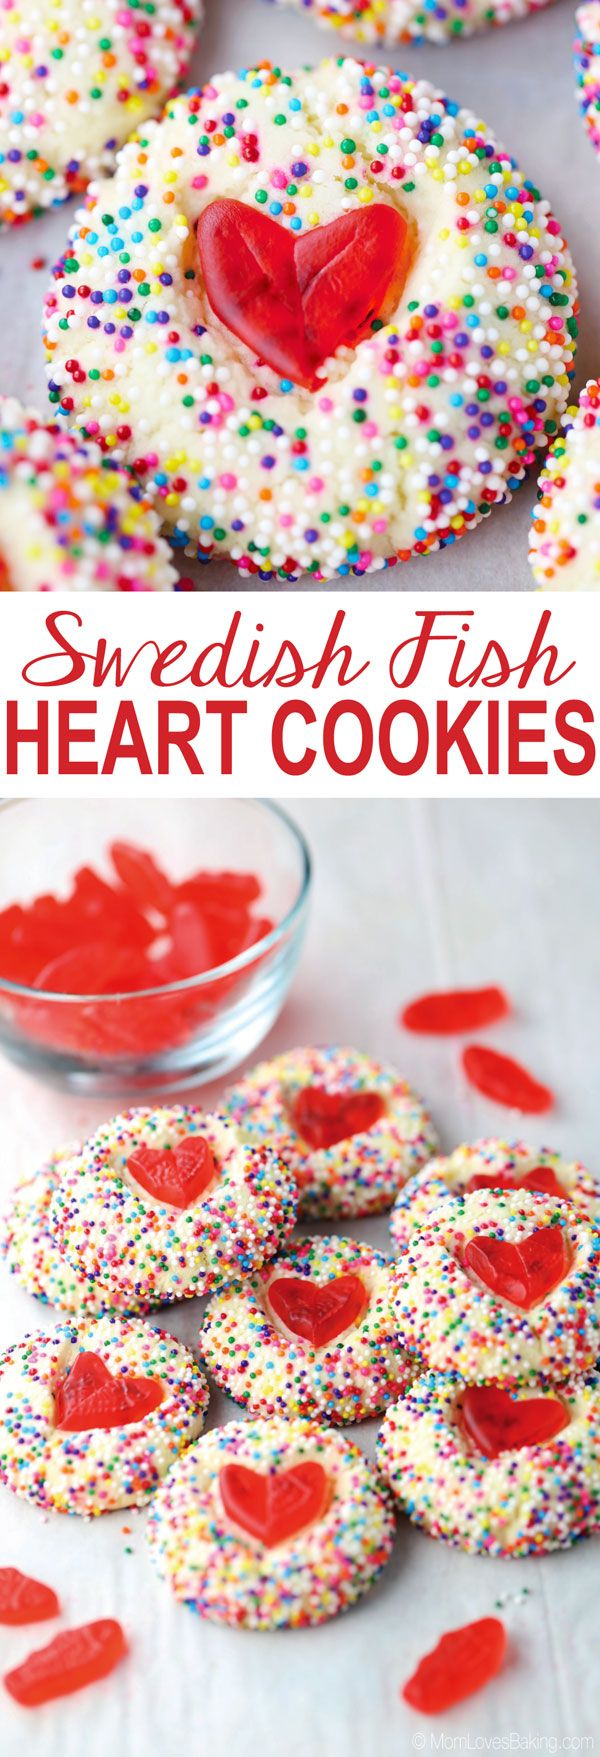 Swedish Fish Heart Cookies are buttery thumbprint cookies dipped in sprinkles and topped with a heart shaped Swedish Fish candy. Get the recipe on http://MomLovesBaking.com